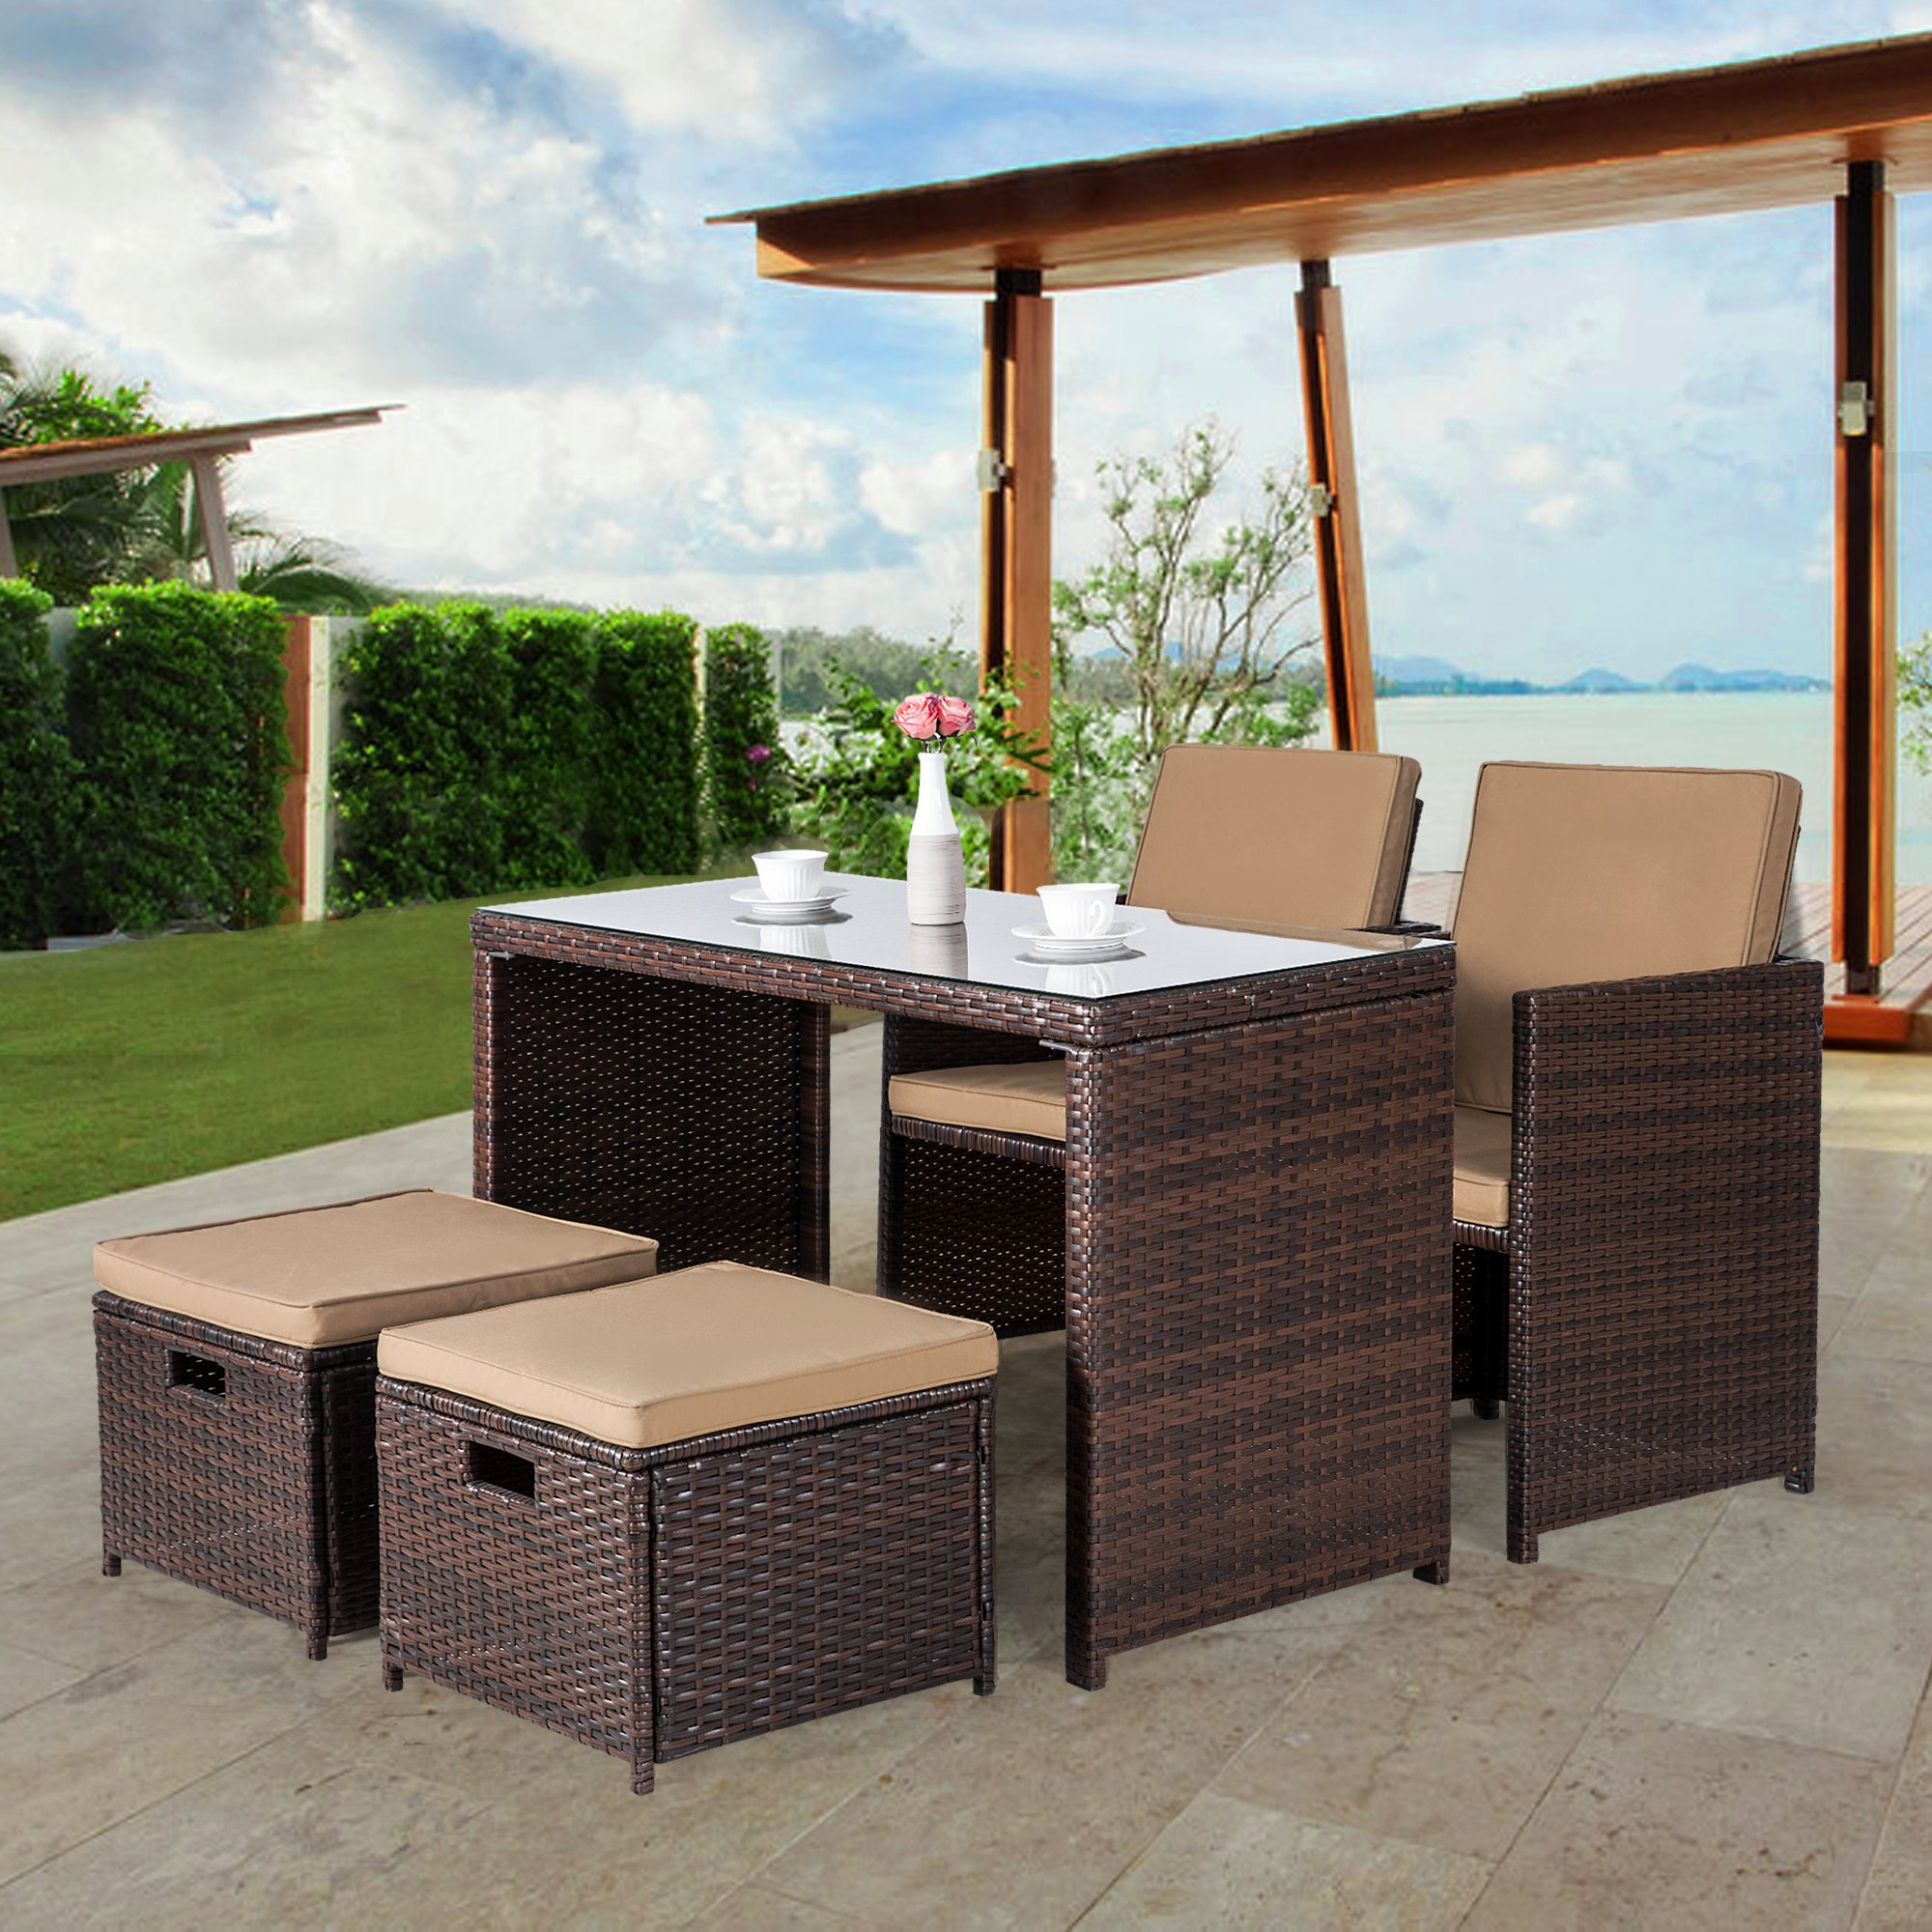 Cloud Mountain Outdoor 5 Piece Rattan Wicker Furniture Bar Set Dining Set Cushioned Patio Furniture Set Space Saving - 1 Patio Dining Table & 4 Conversation Bistro Set, Brown by Cloud Mountain (Image #1)